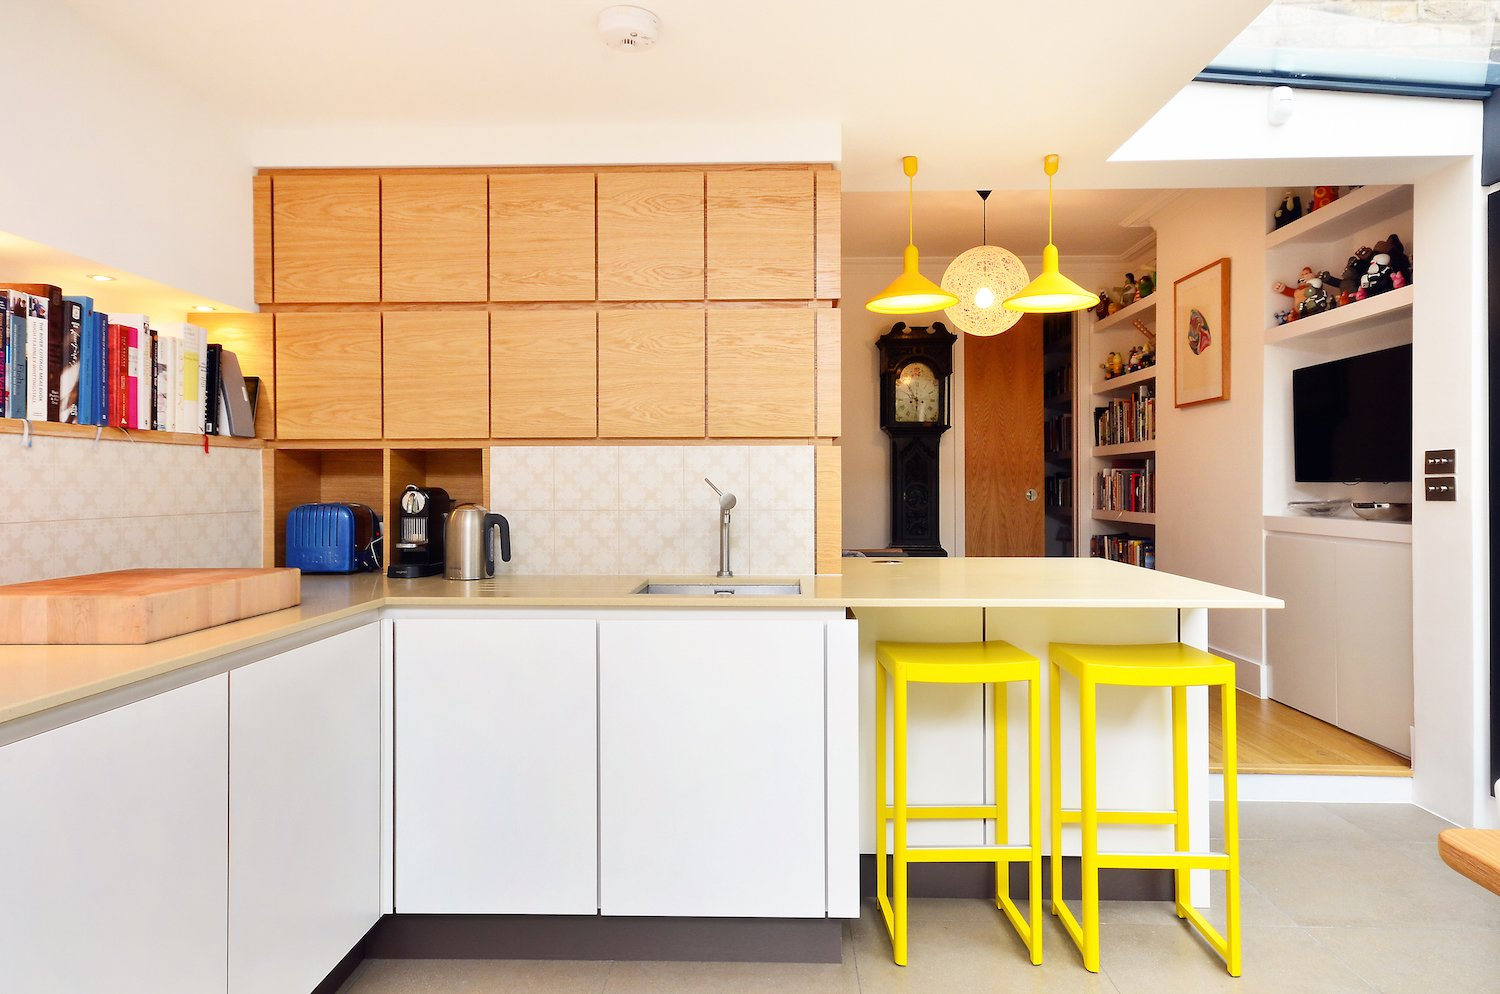 Bright yellow Torch S3 large cone pendant lights and Seleri bar stools reinforce the black-and-yellow color palette.